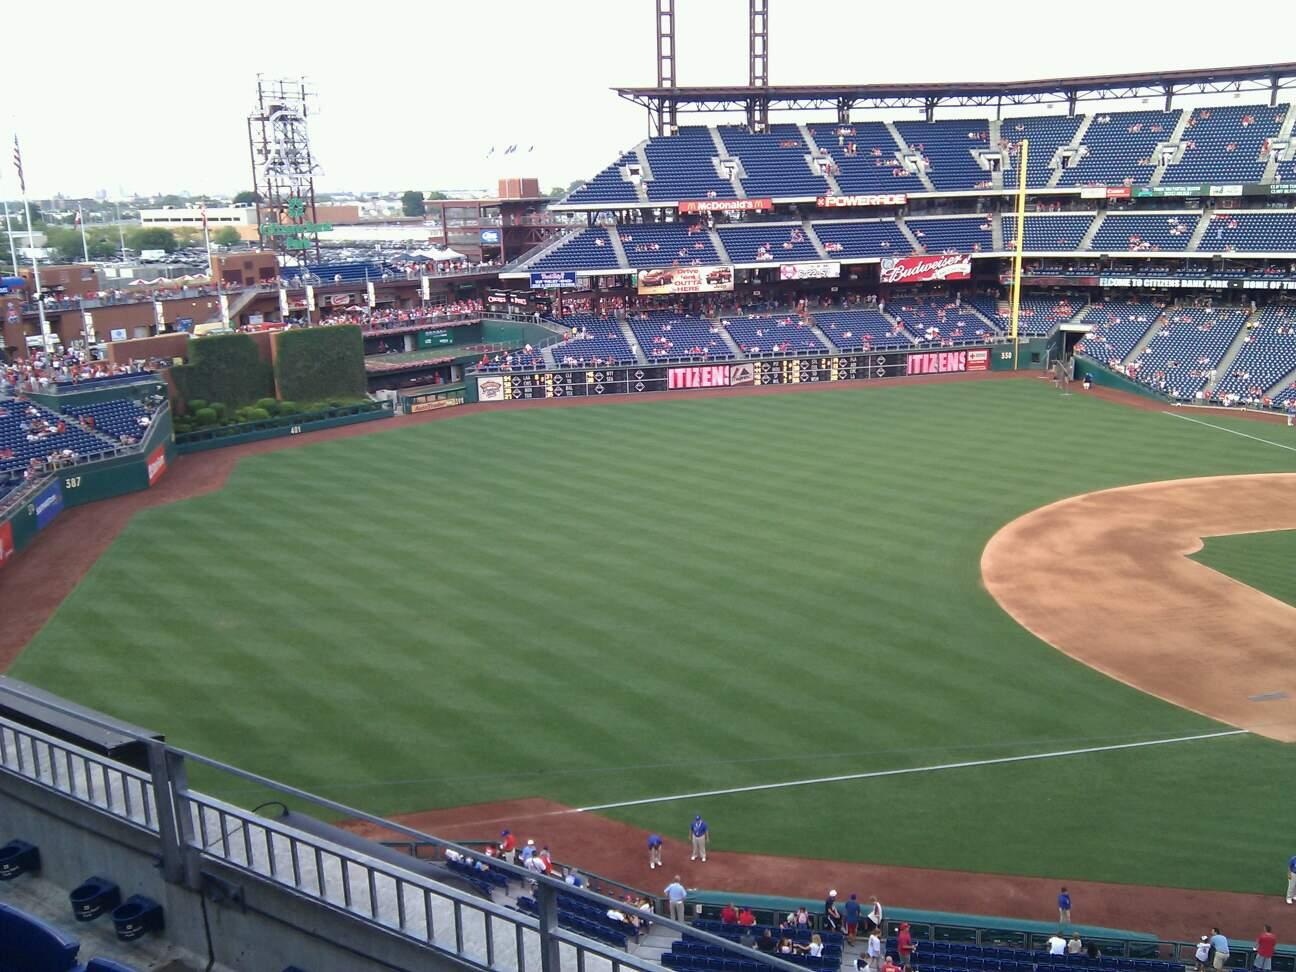 Citizens Bank Park Section 330 Row 3 Seat 6